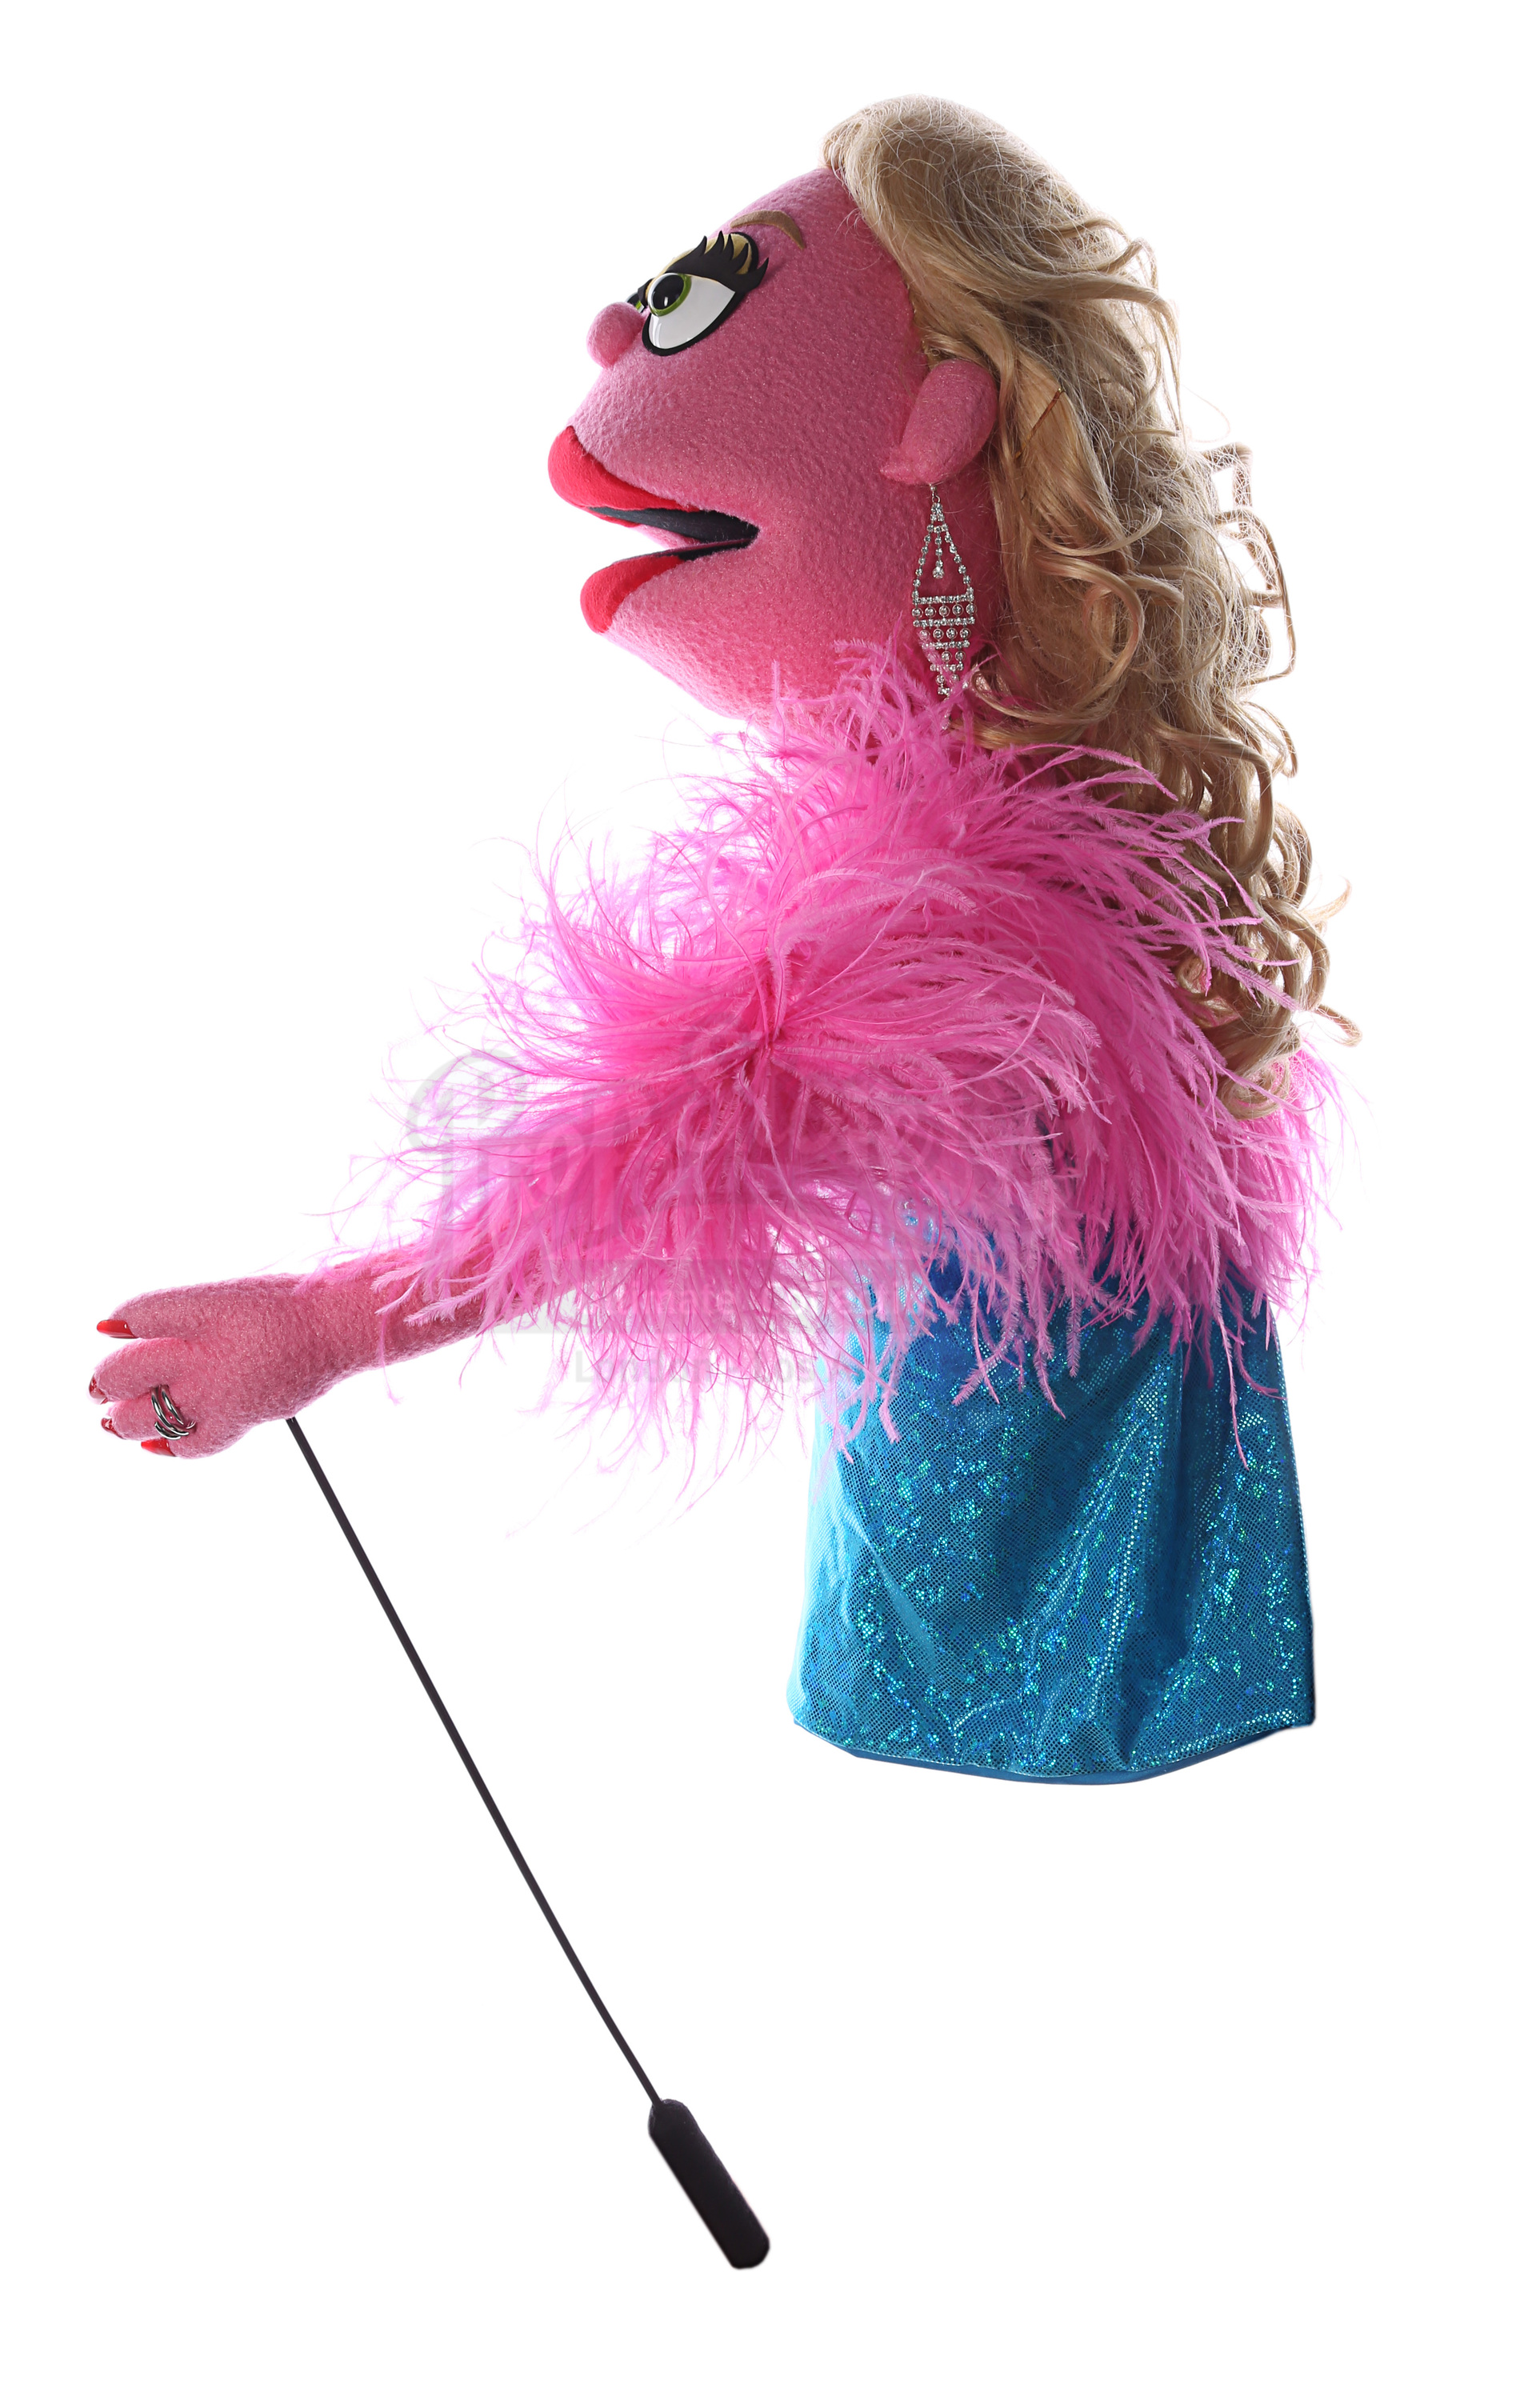 AVENUE Q (STAGE SHOW) - Lucy the Slut and Princeton Puppets - Image 8 of 9